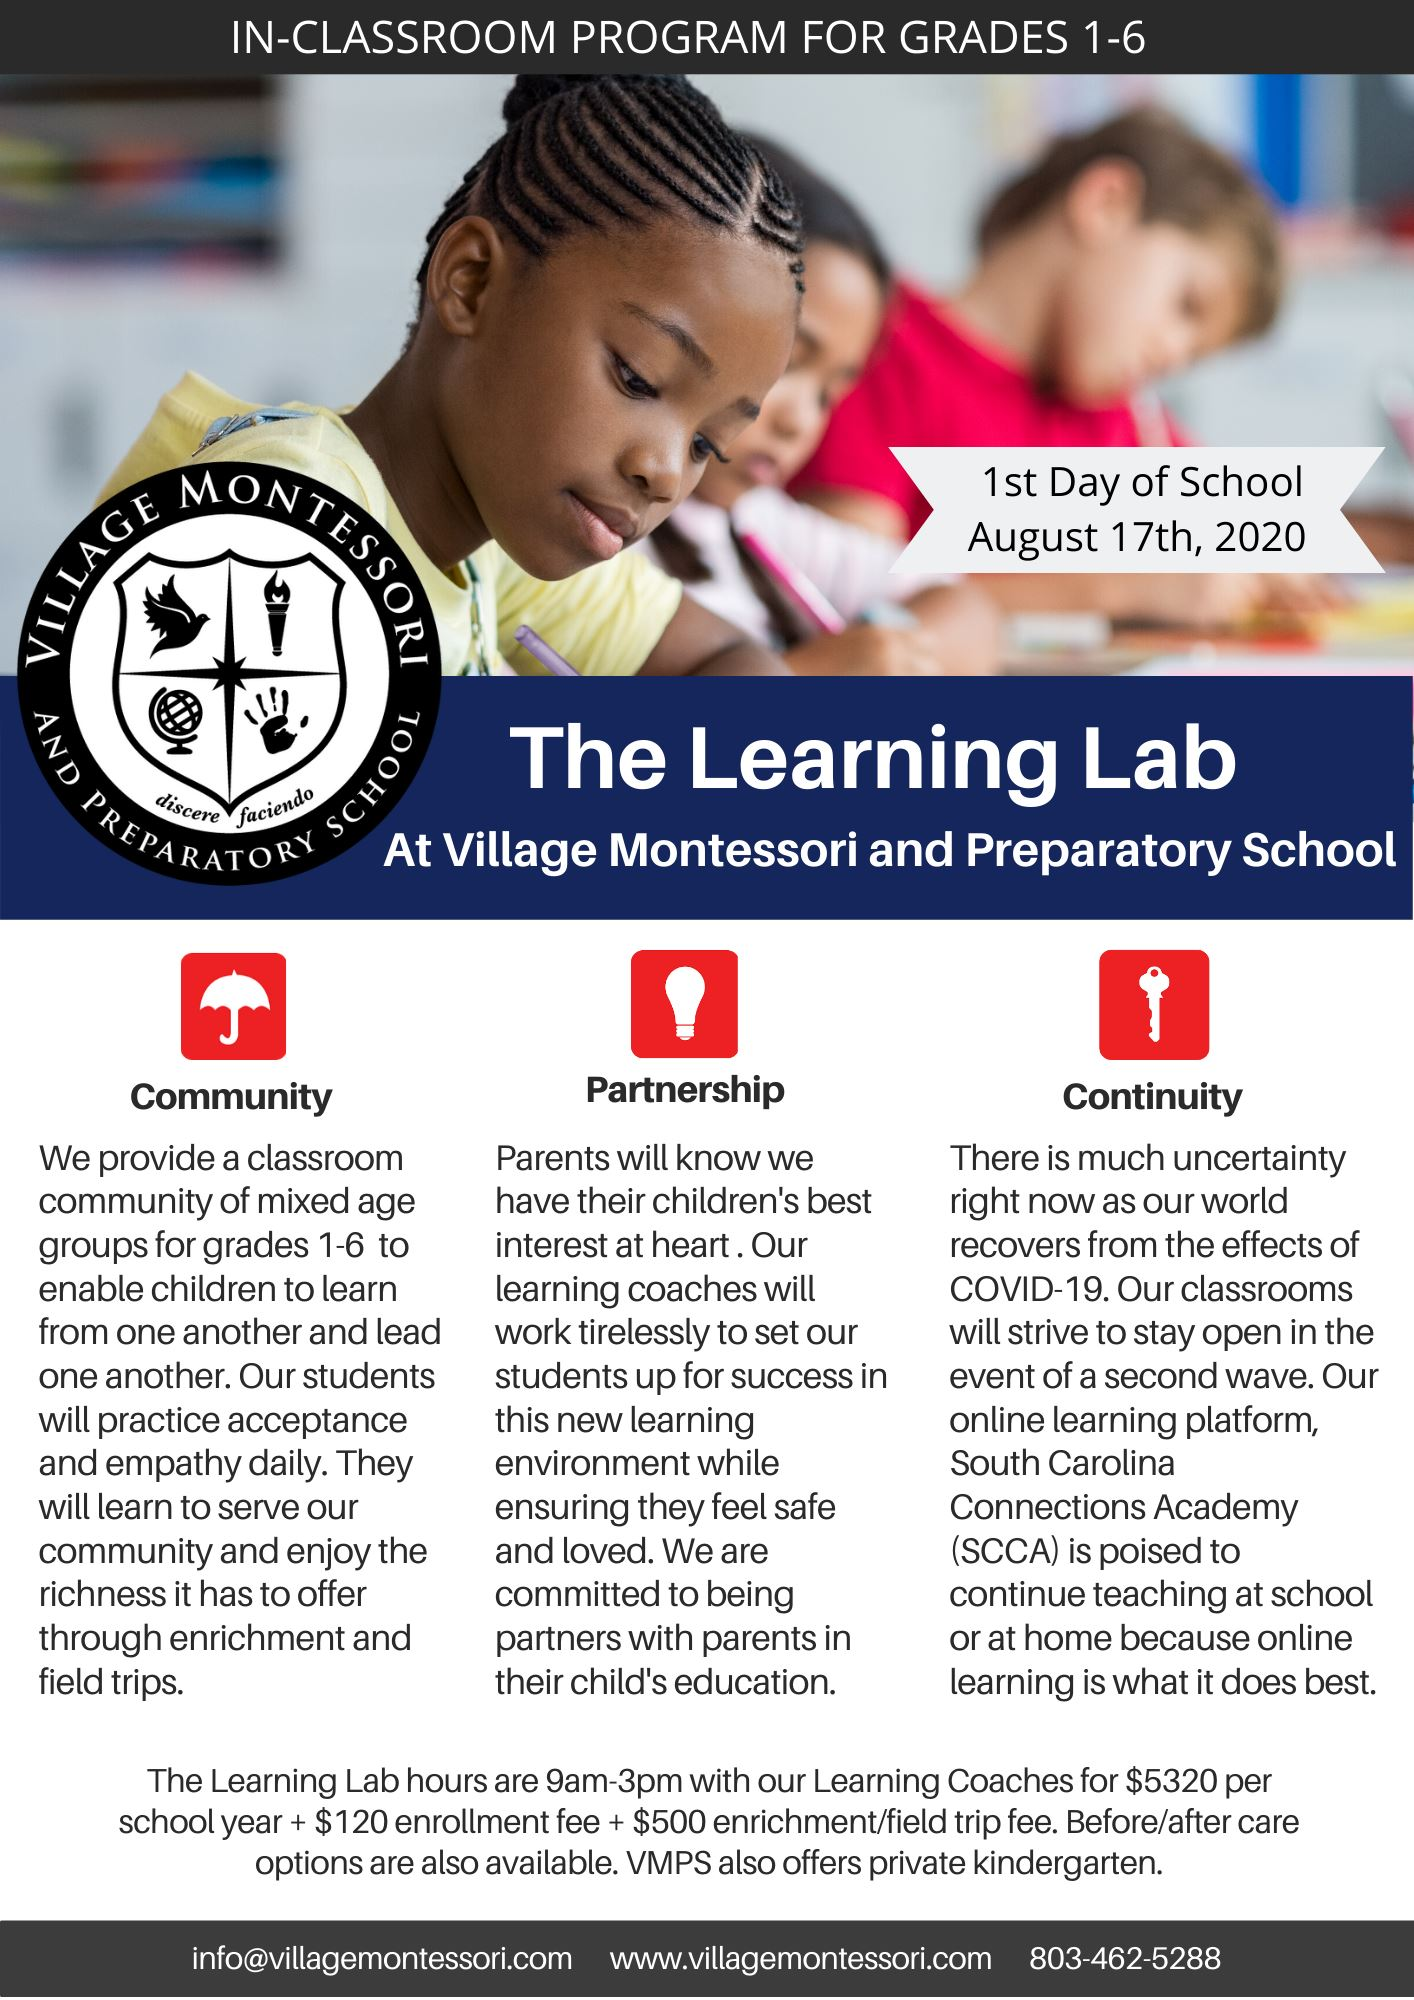 The Learning Lab for SCCA - First Day of School